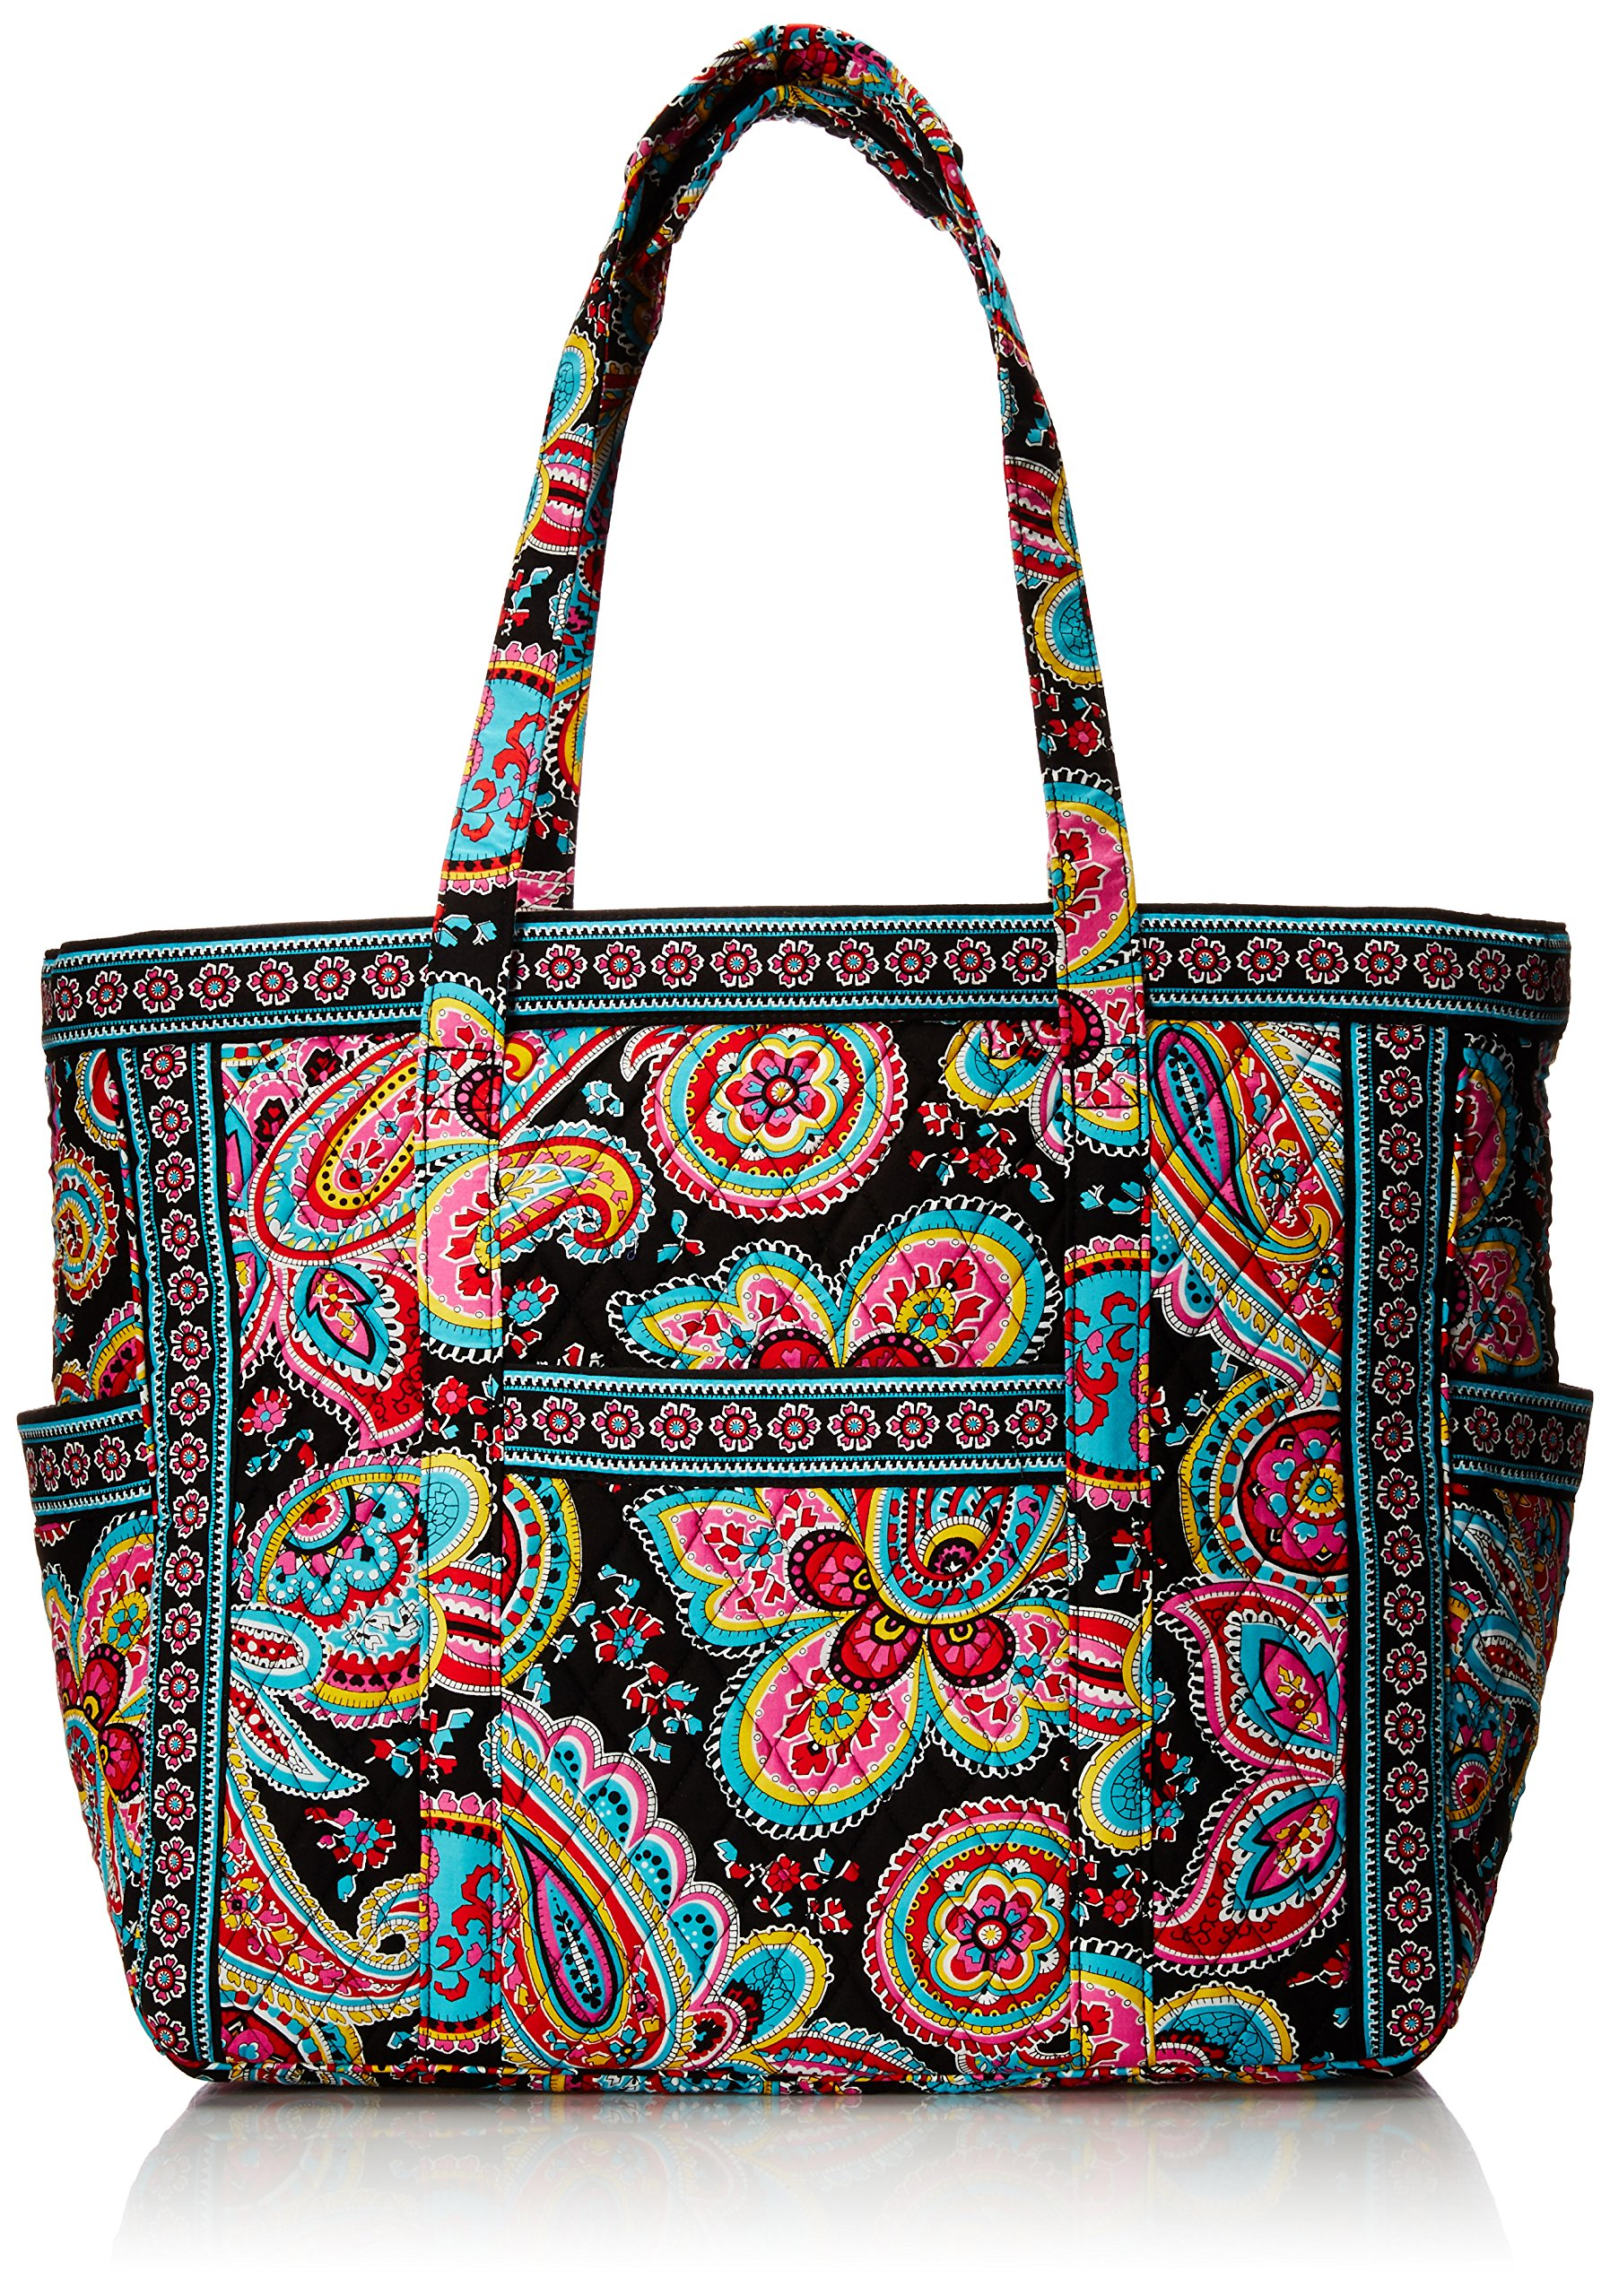 Vera Bradley Get Carried Away Travel Tote, Parisian Paisley, One Size